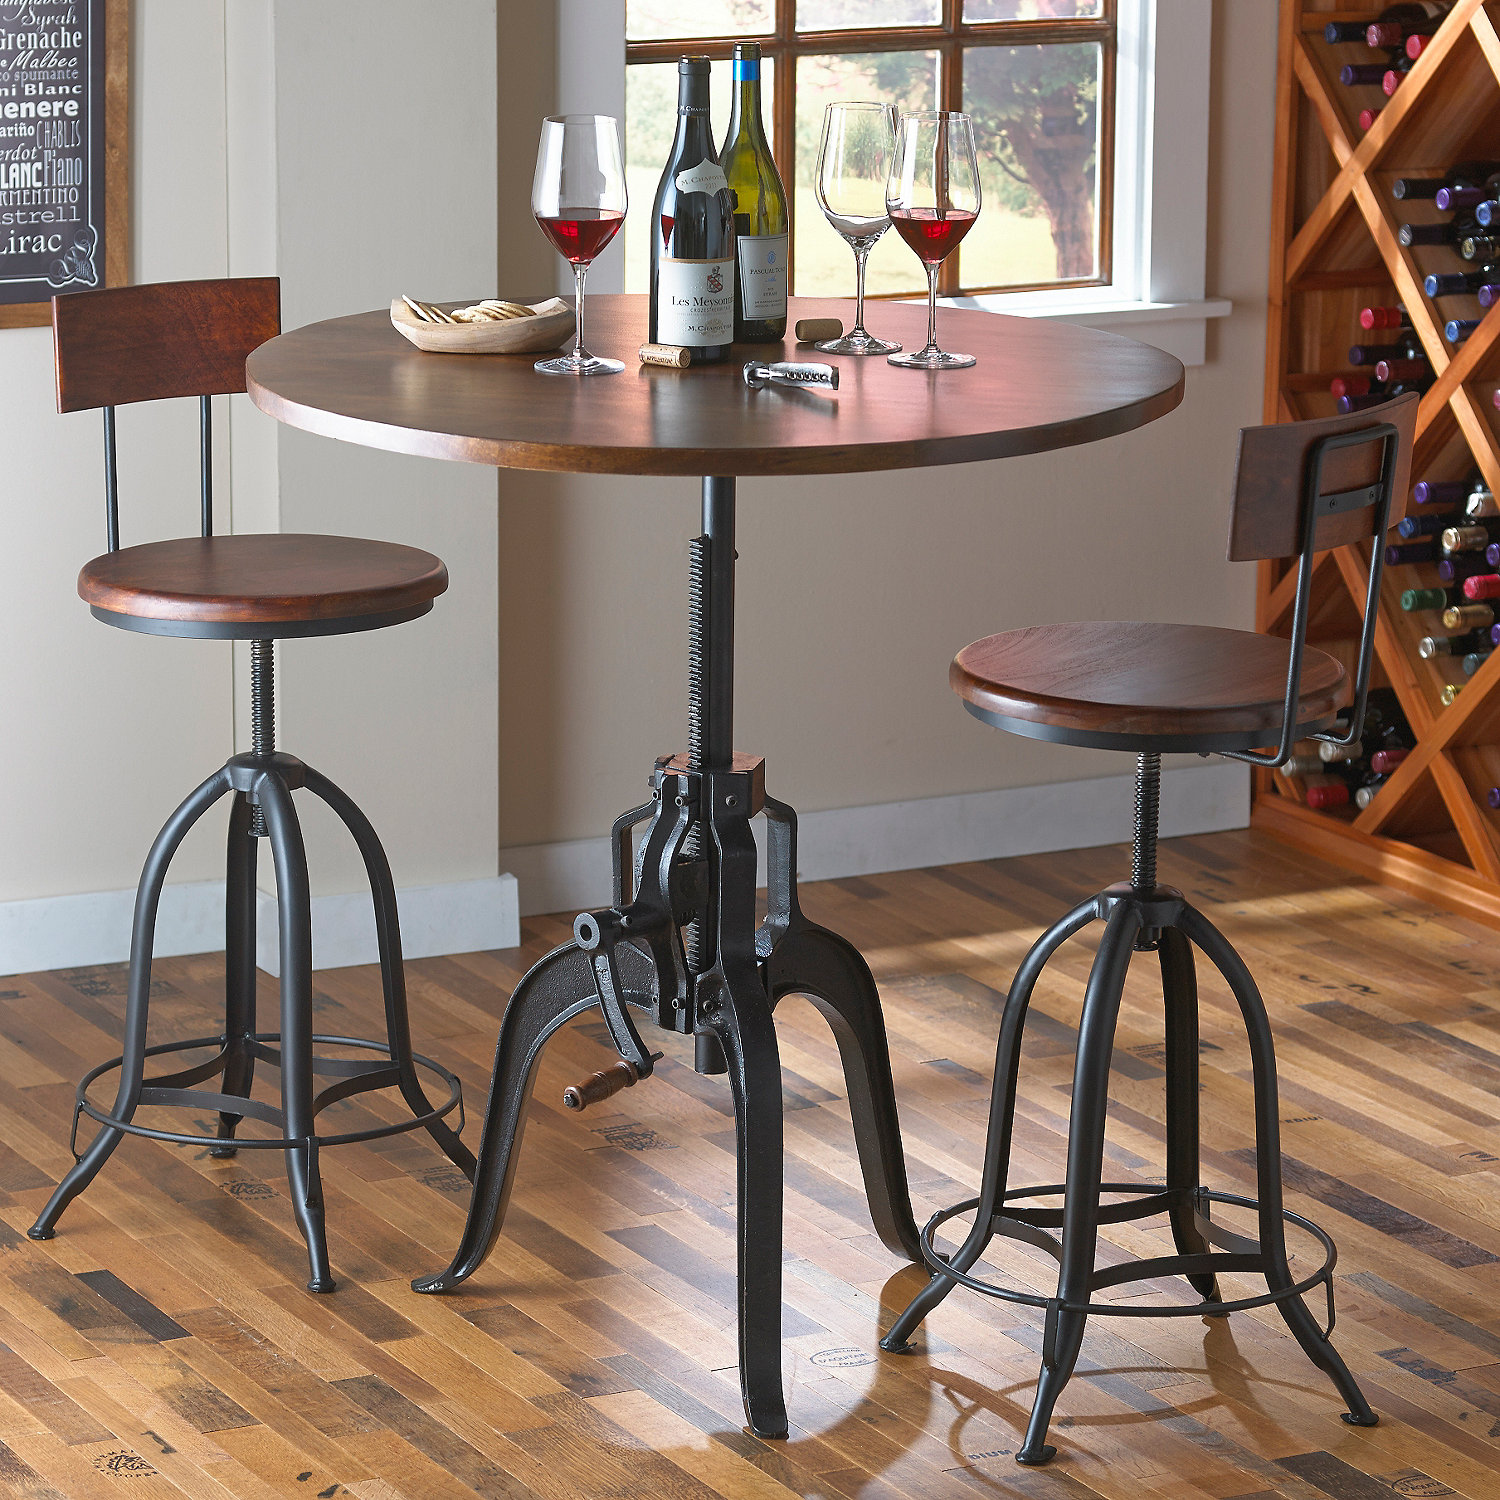 Table And Bar Stools Industrial Crank Pub Table And Two Stools Wine Enthusiast